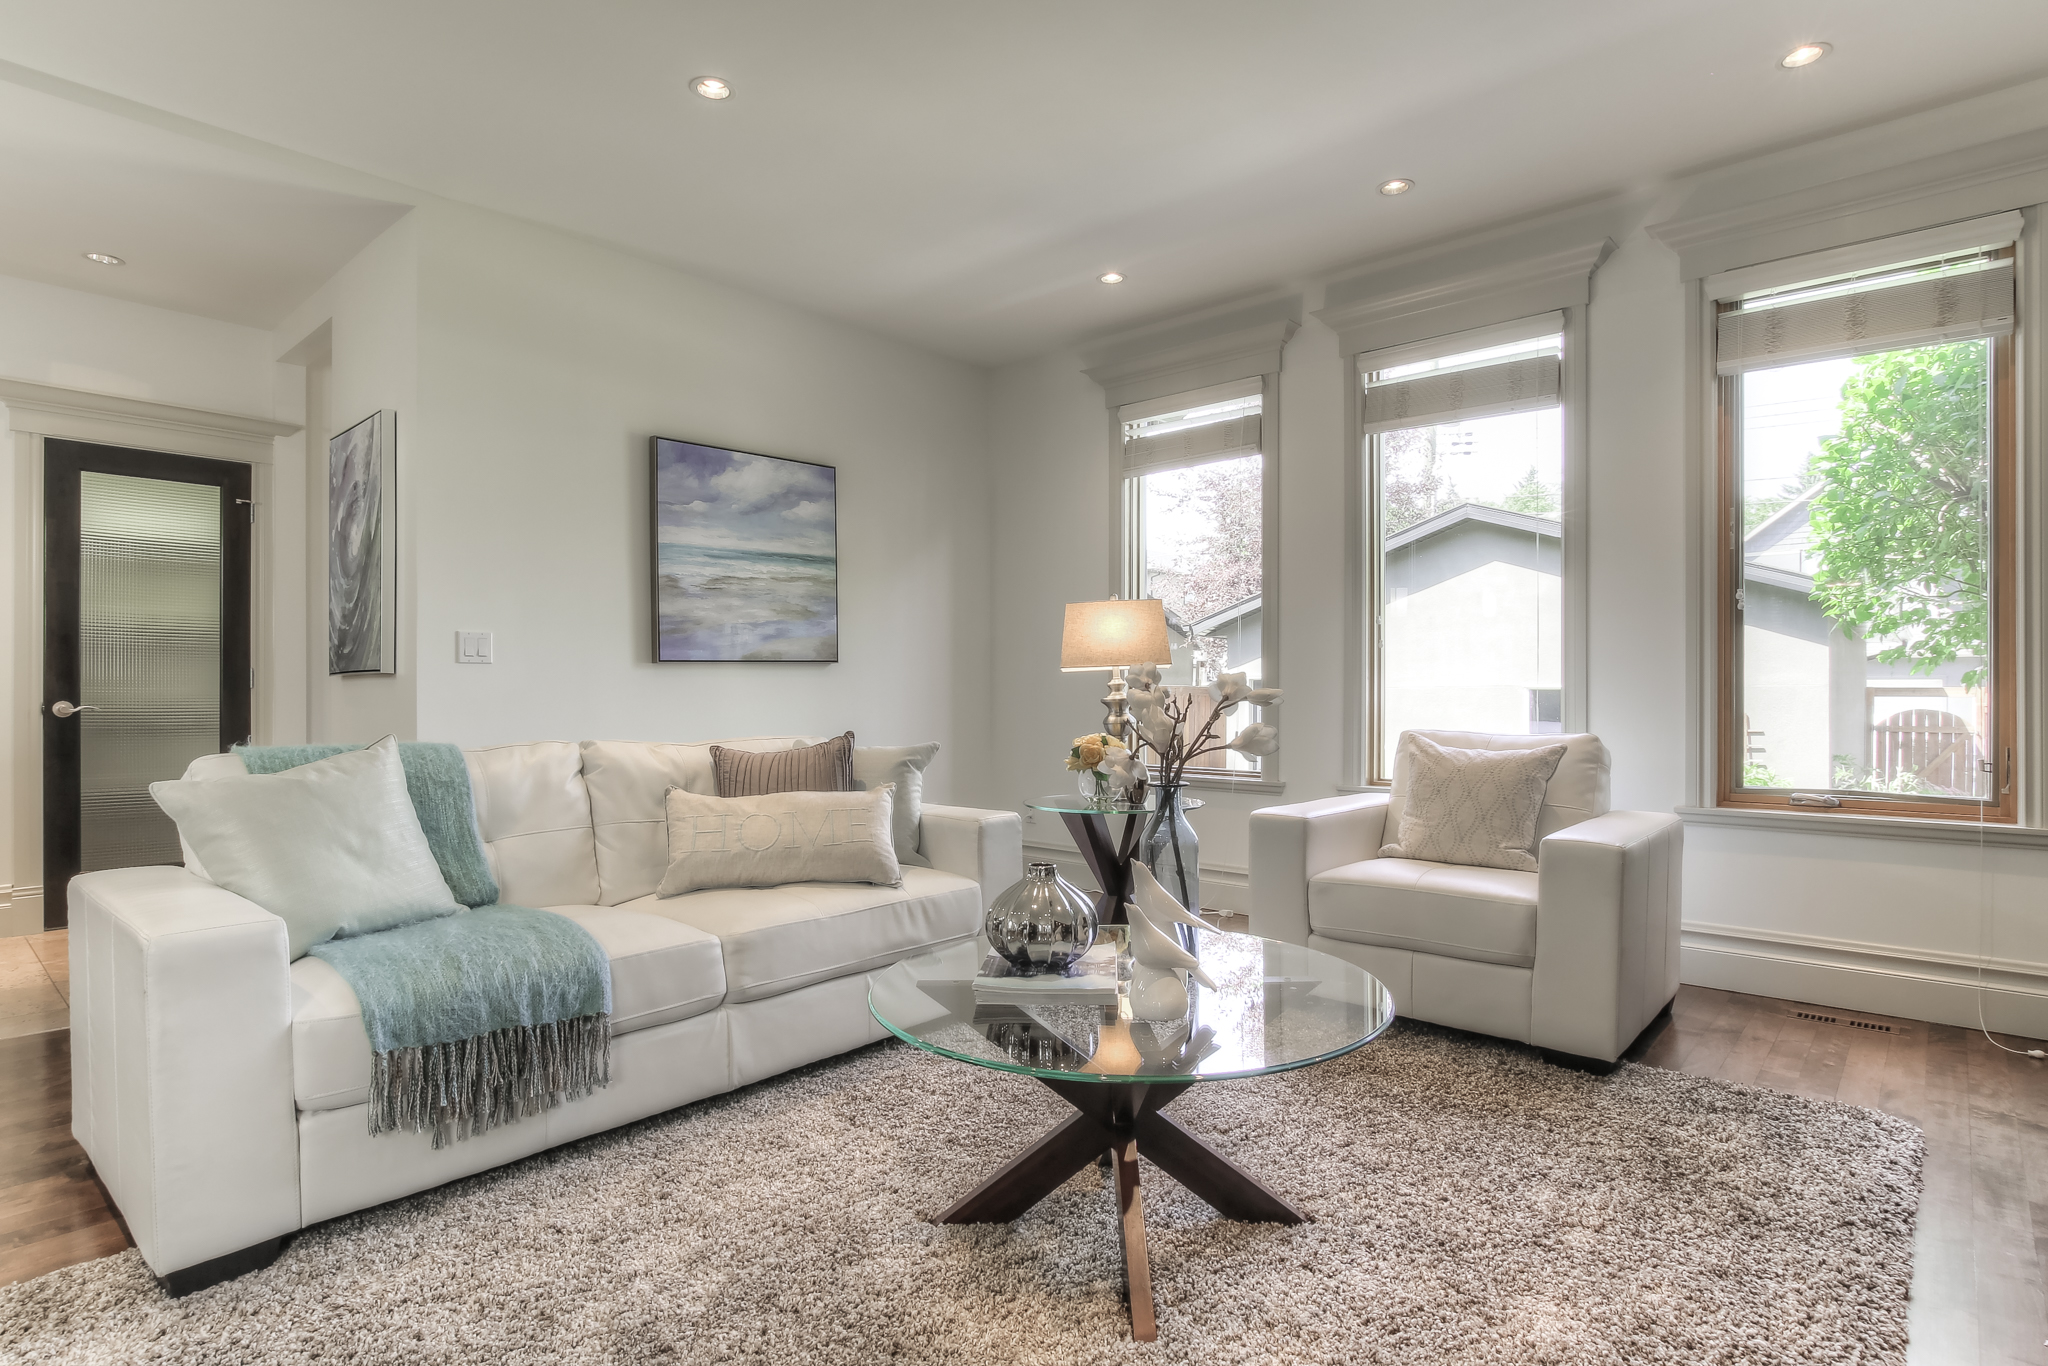 Home Staging Calgary : calgary home staging tips and tricks from calgary 39 s professional home staging company ~ Markanthonyermac.com Haus und Dekorationen